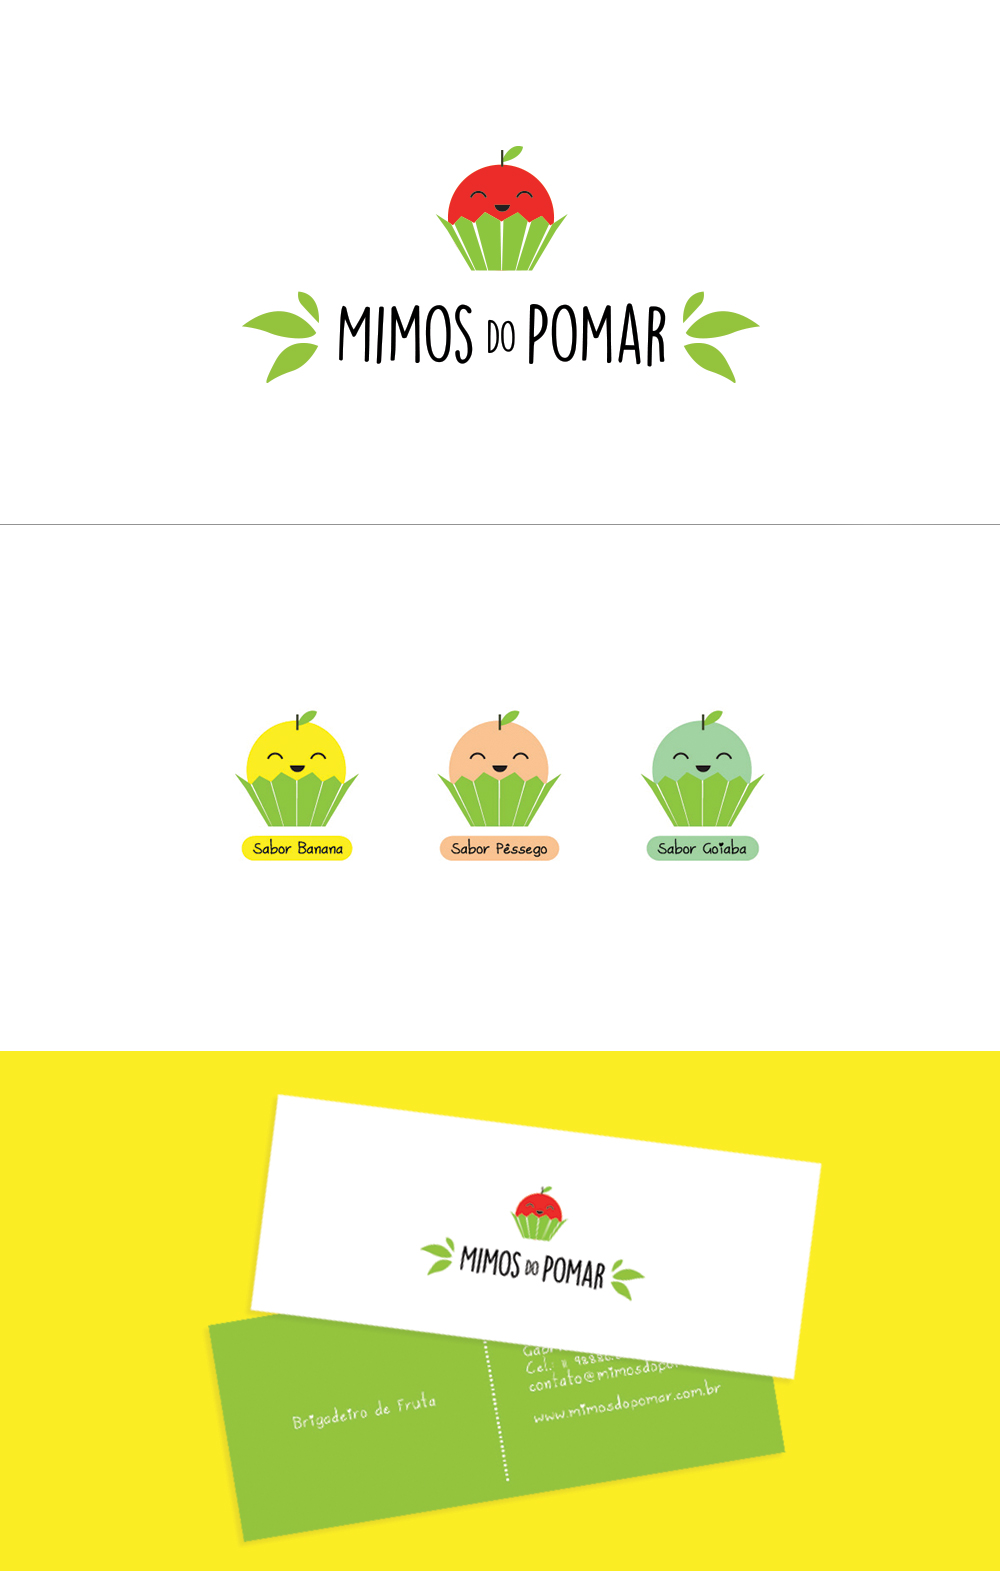 mimos-do-pomar-logo.jpg